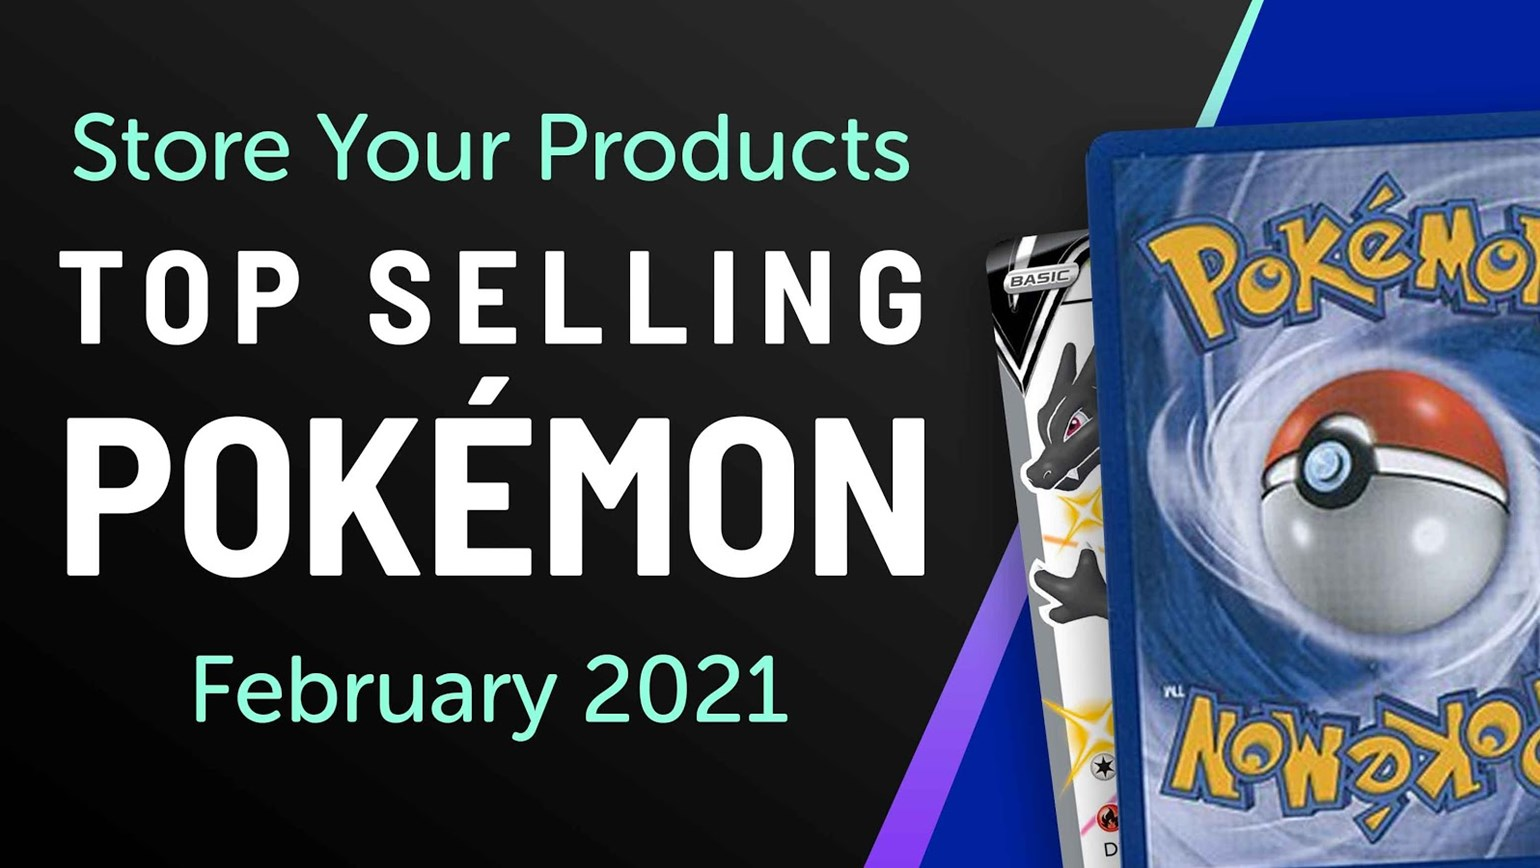 Top Selling Pokémon Cards in Store Your Products: February 2021